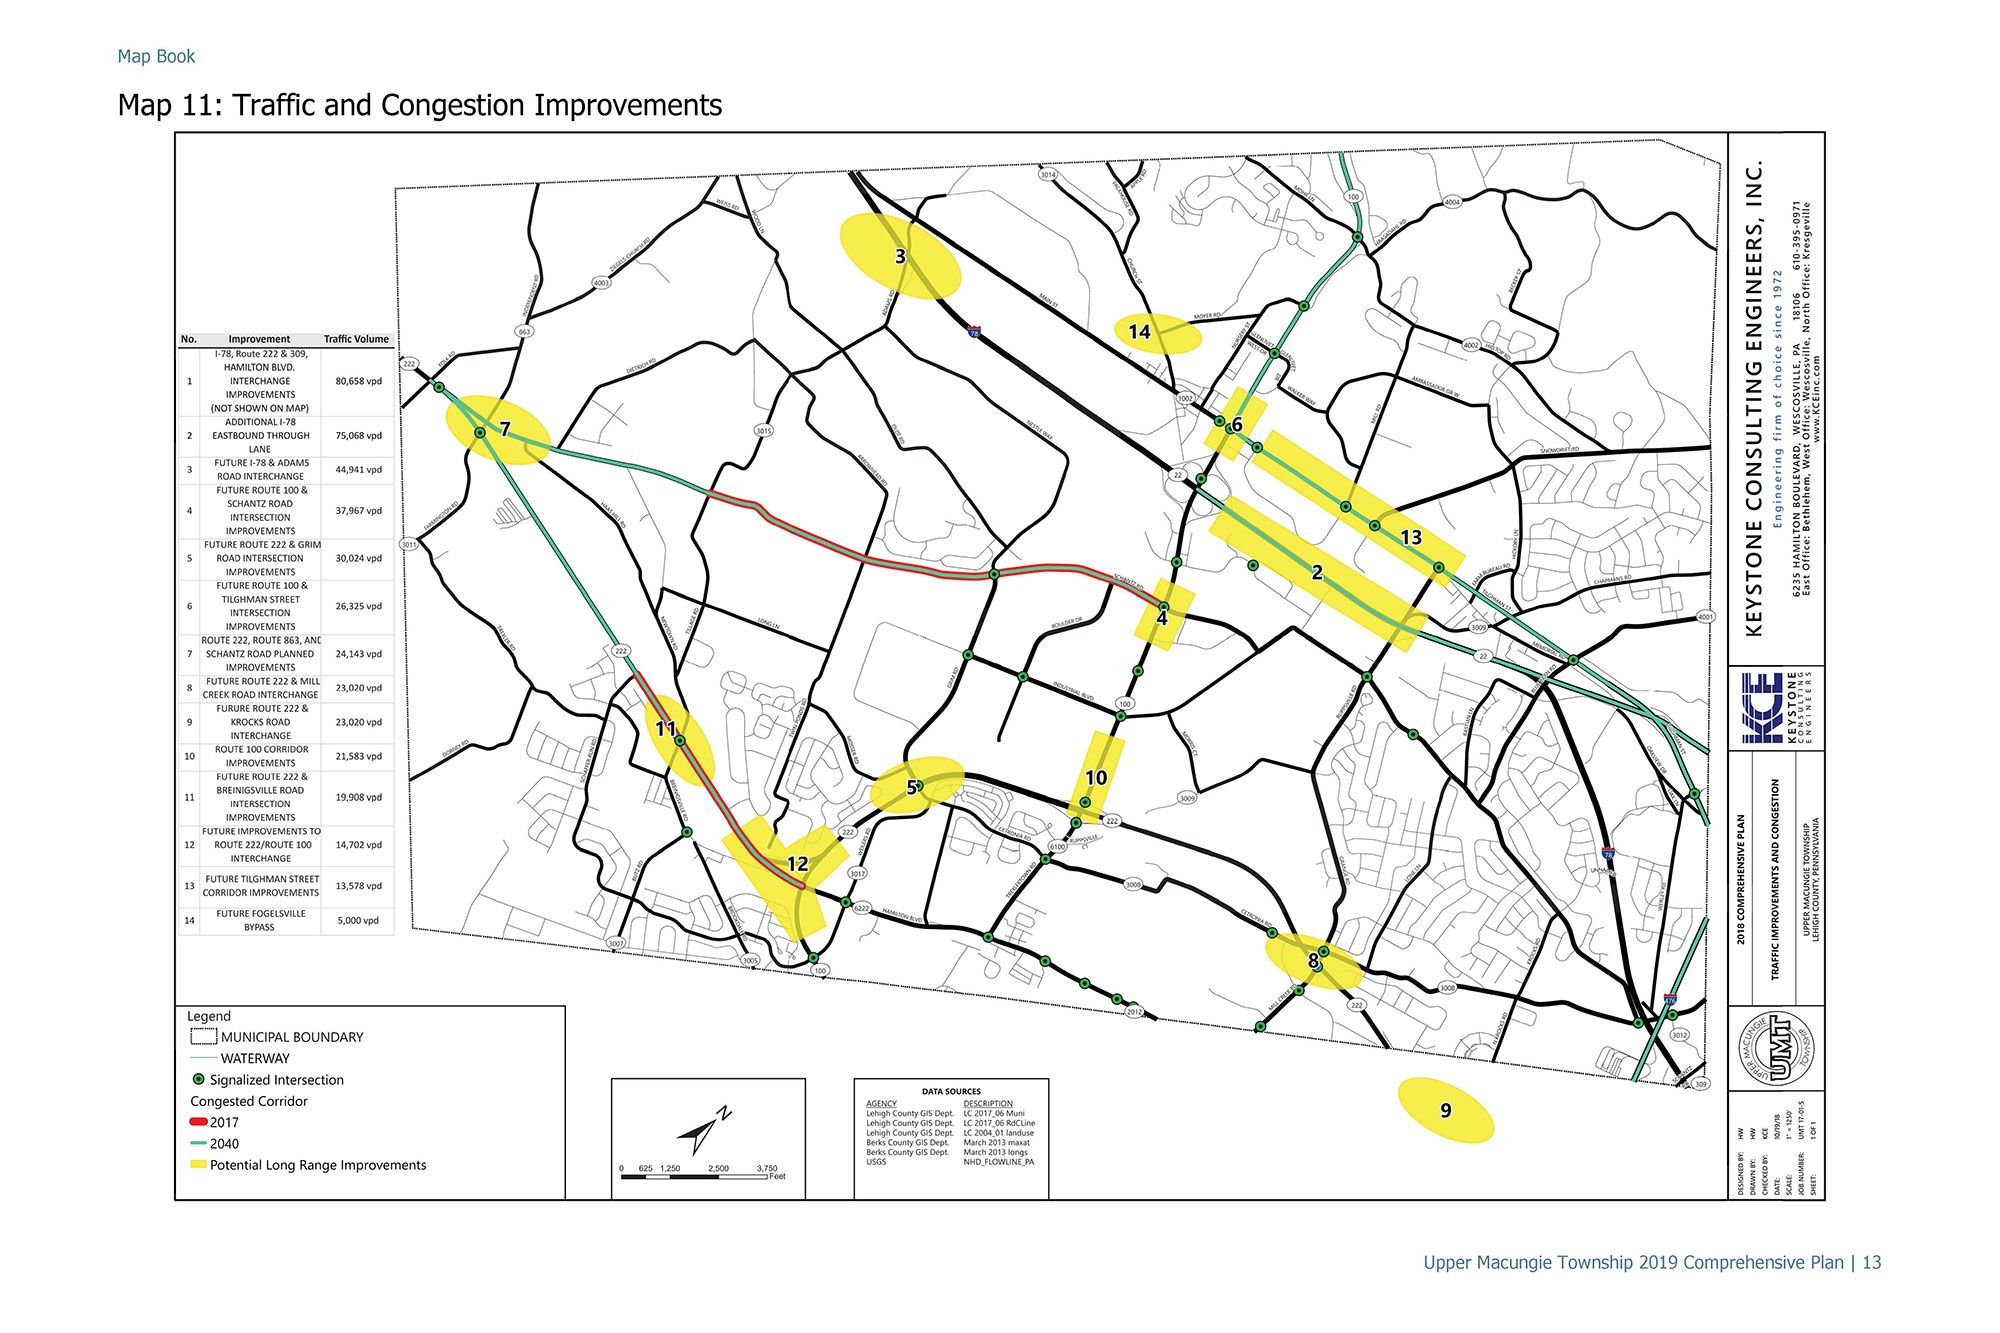 Upper Macungie Township Comprehensive Plan